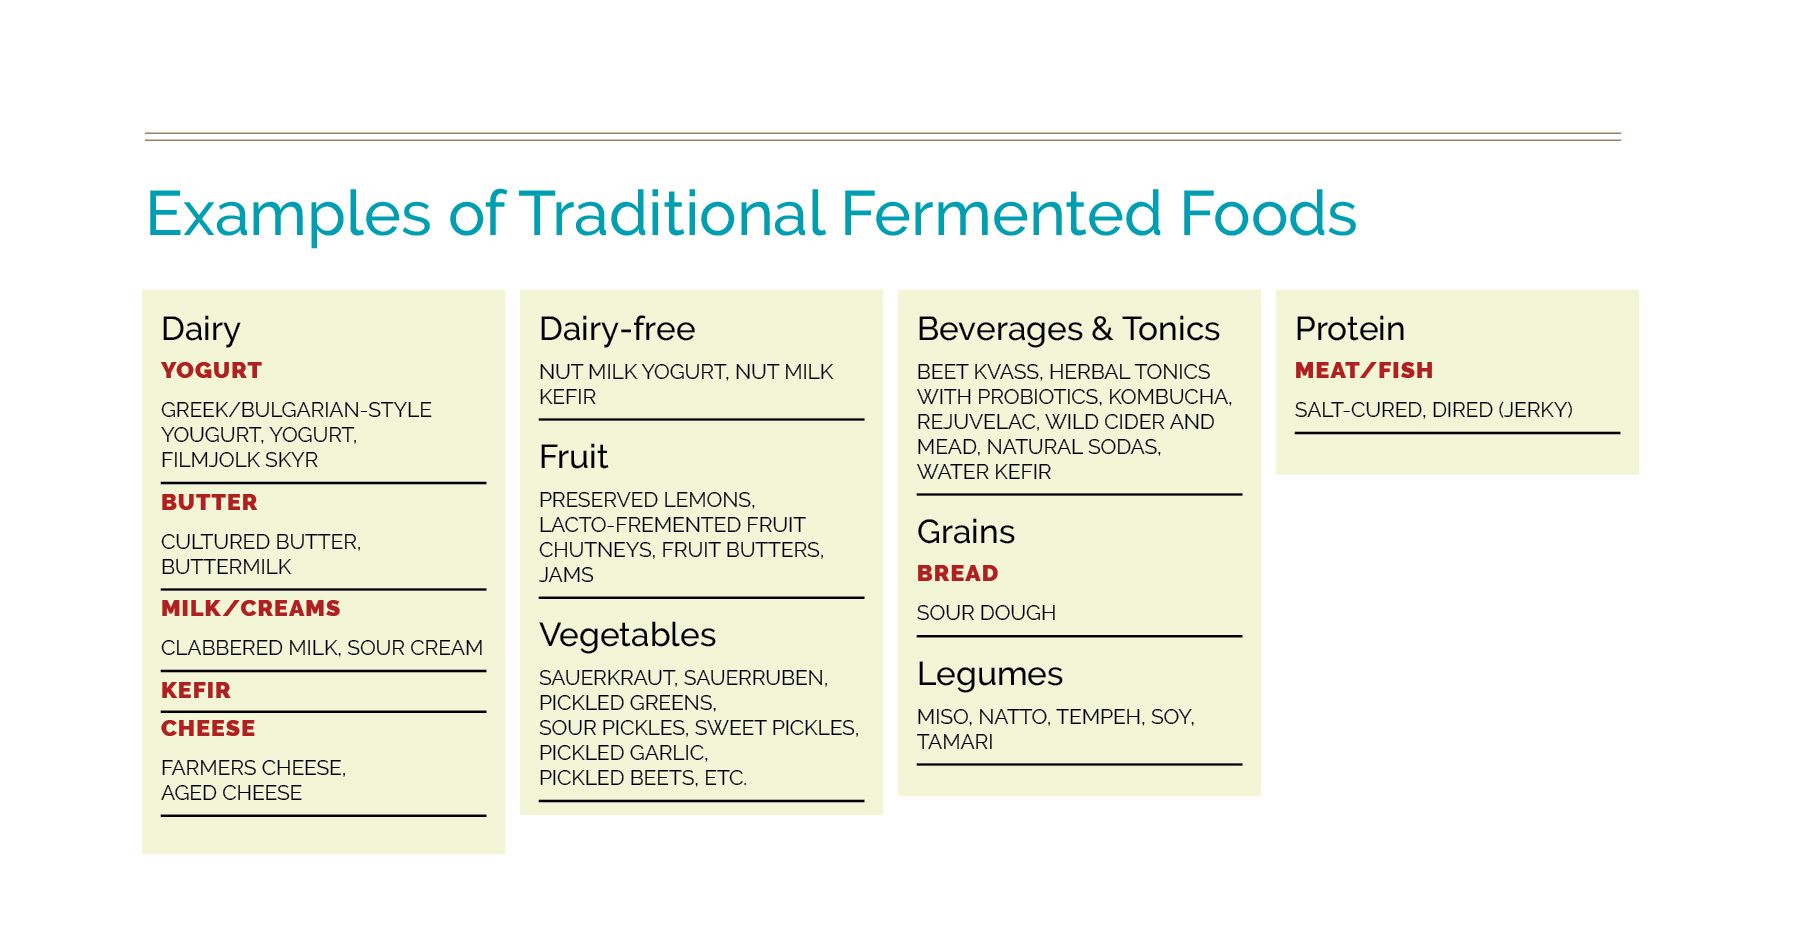 Examples of traditional fermented foods.jpg